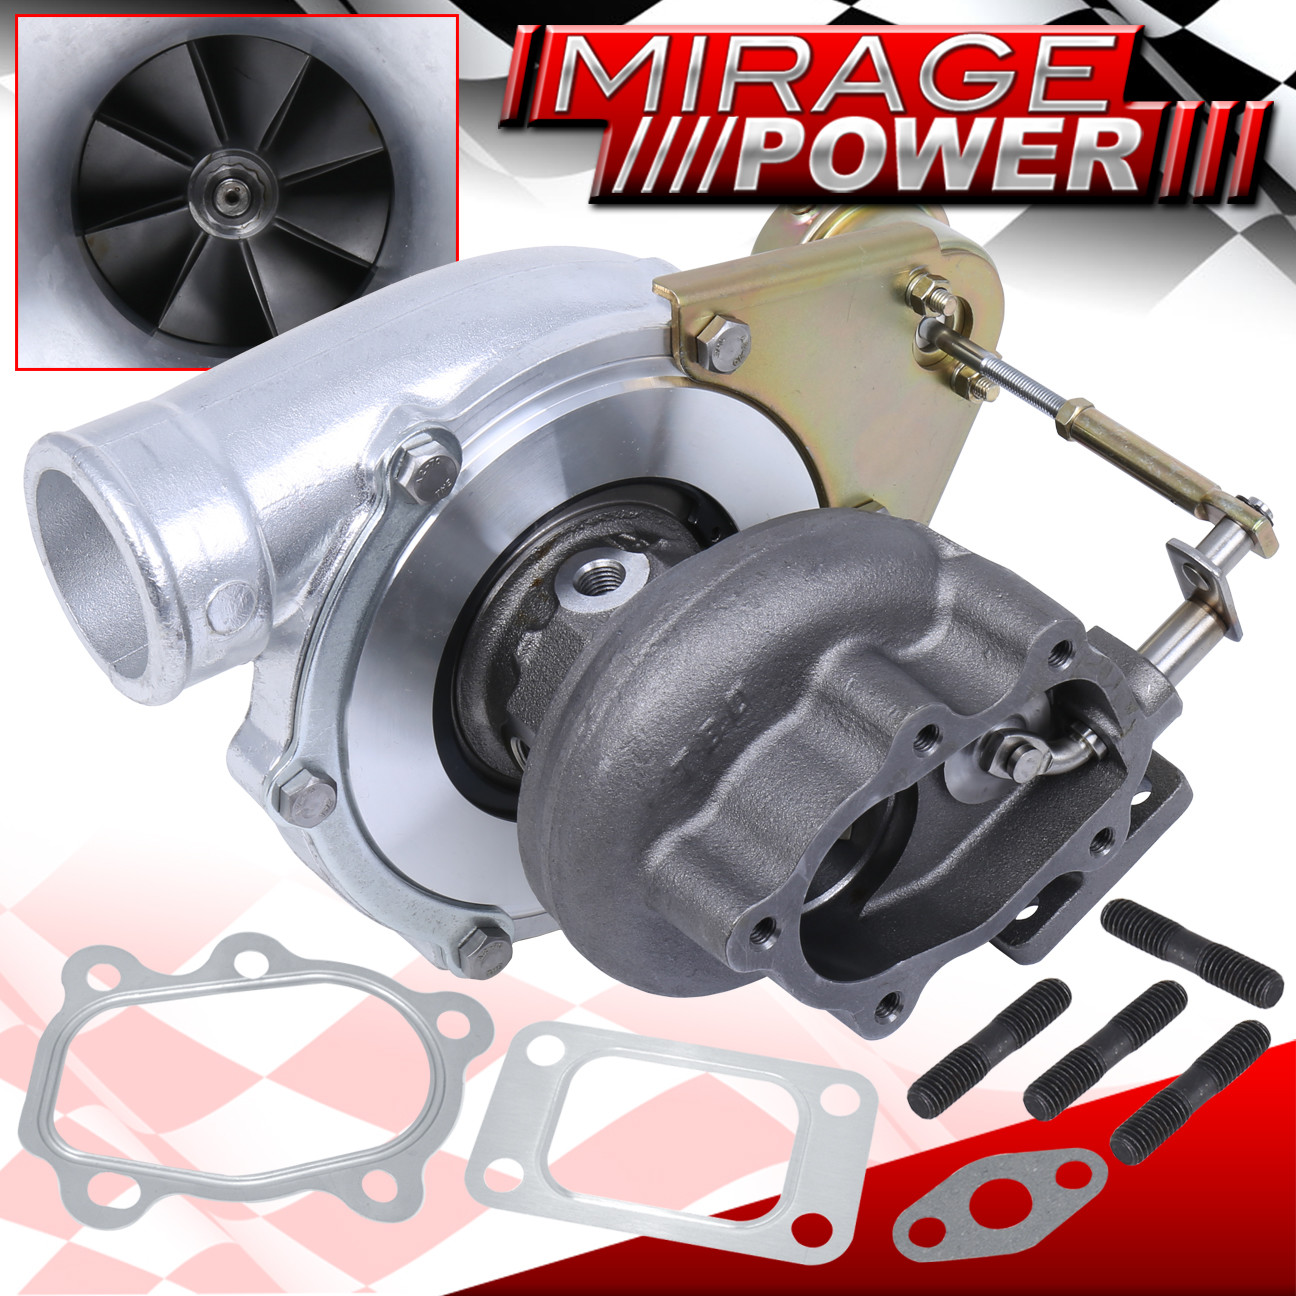 Gt3576 Universal Performance Turbo Charger Journal Bearing: GT3071R Stage 3 Journal Bearing Turbo Charger Upgrade